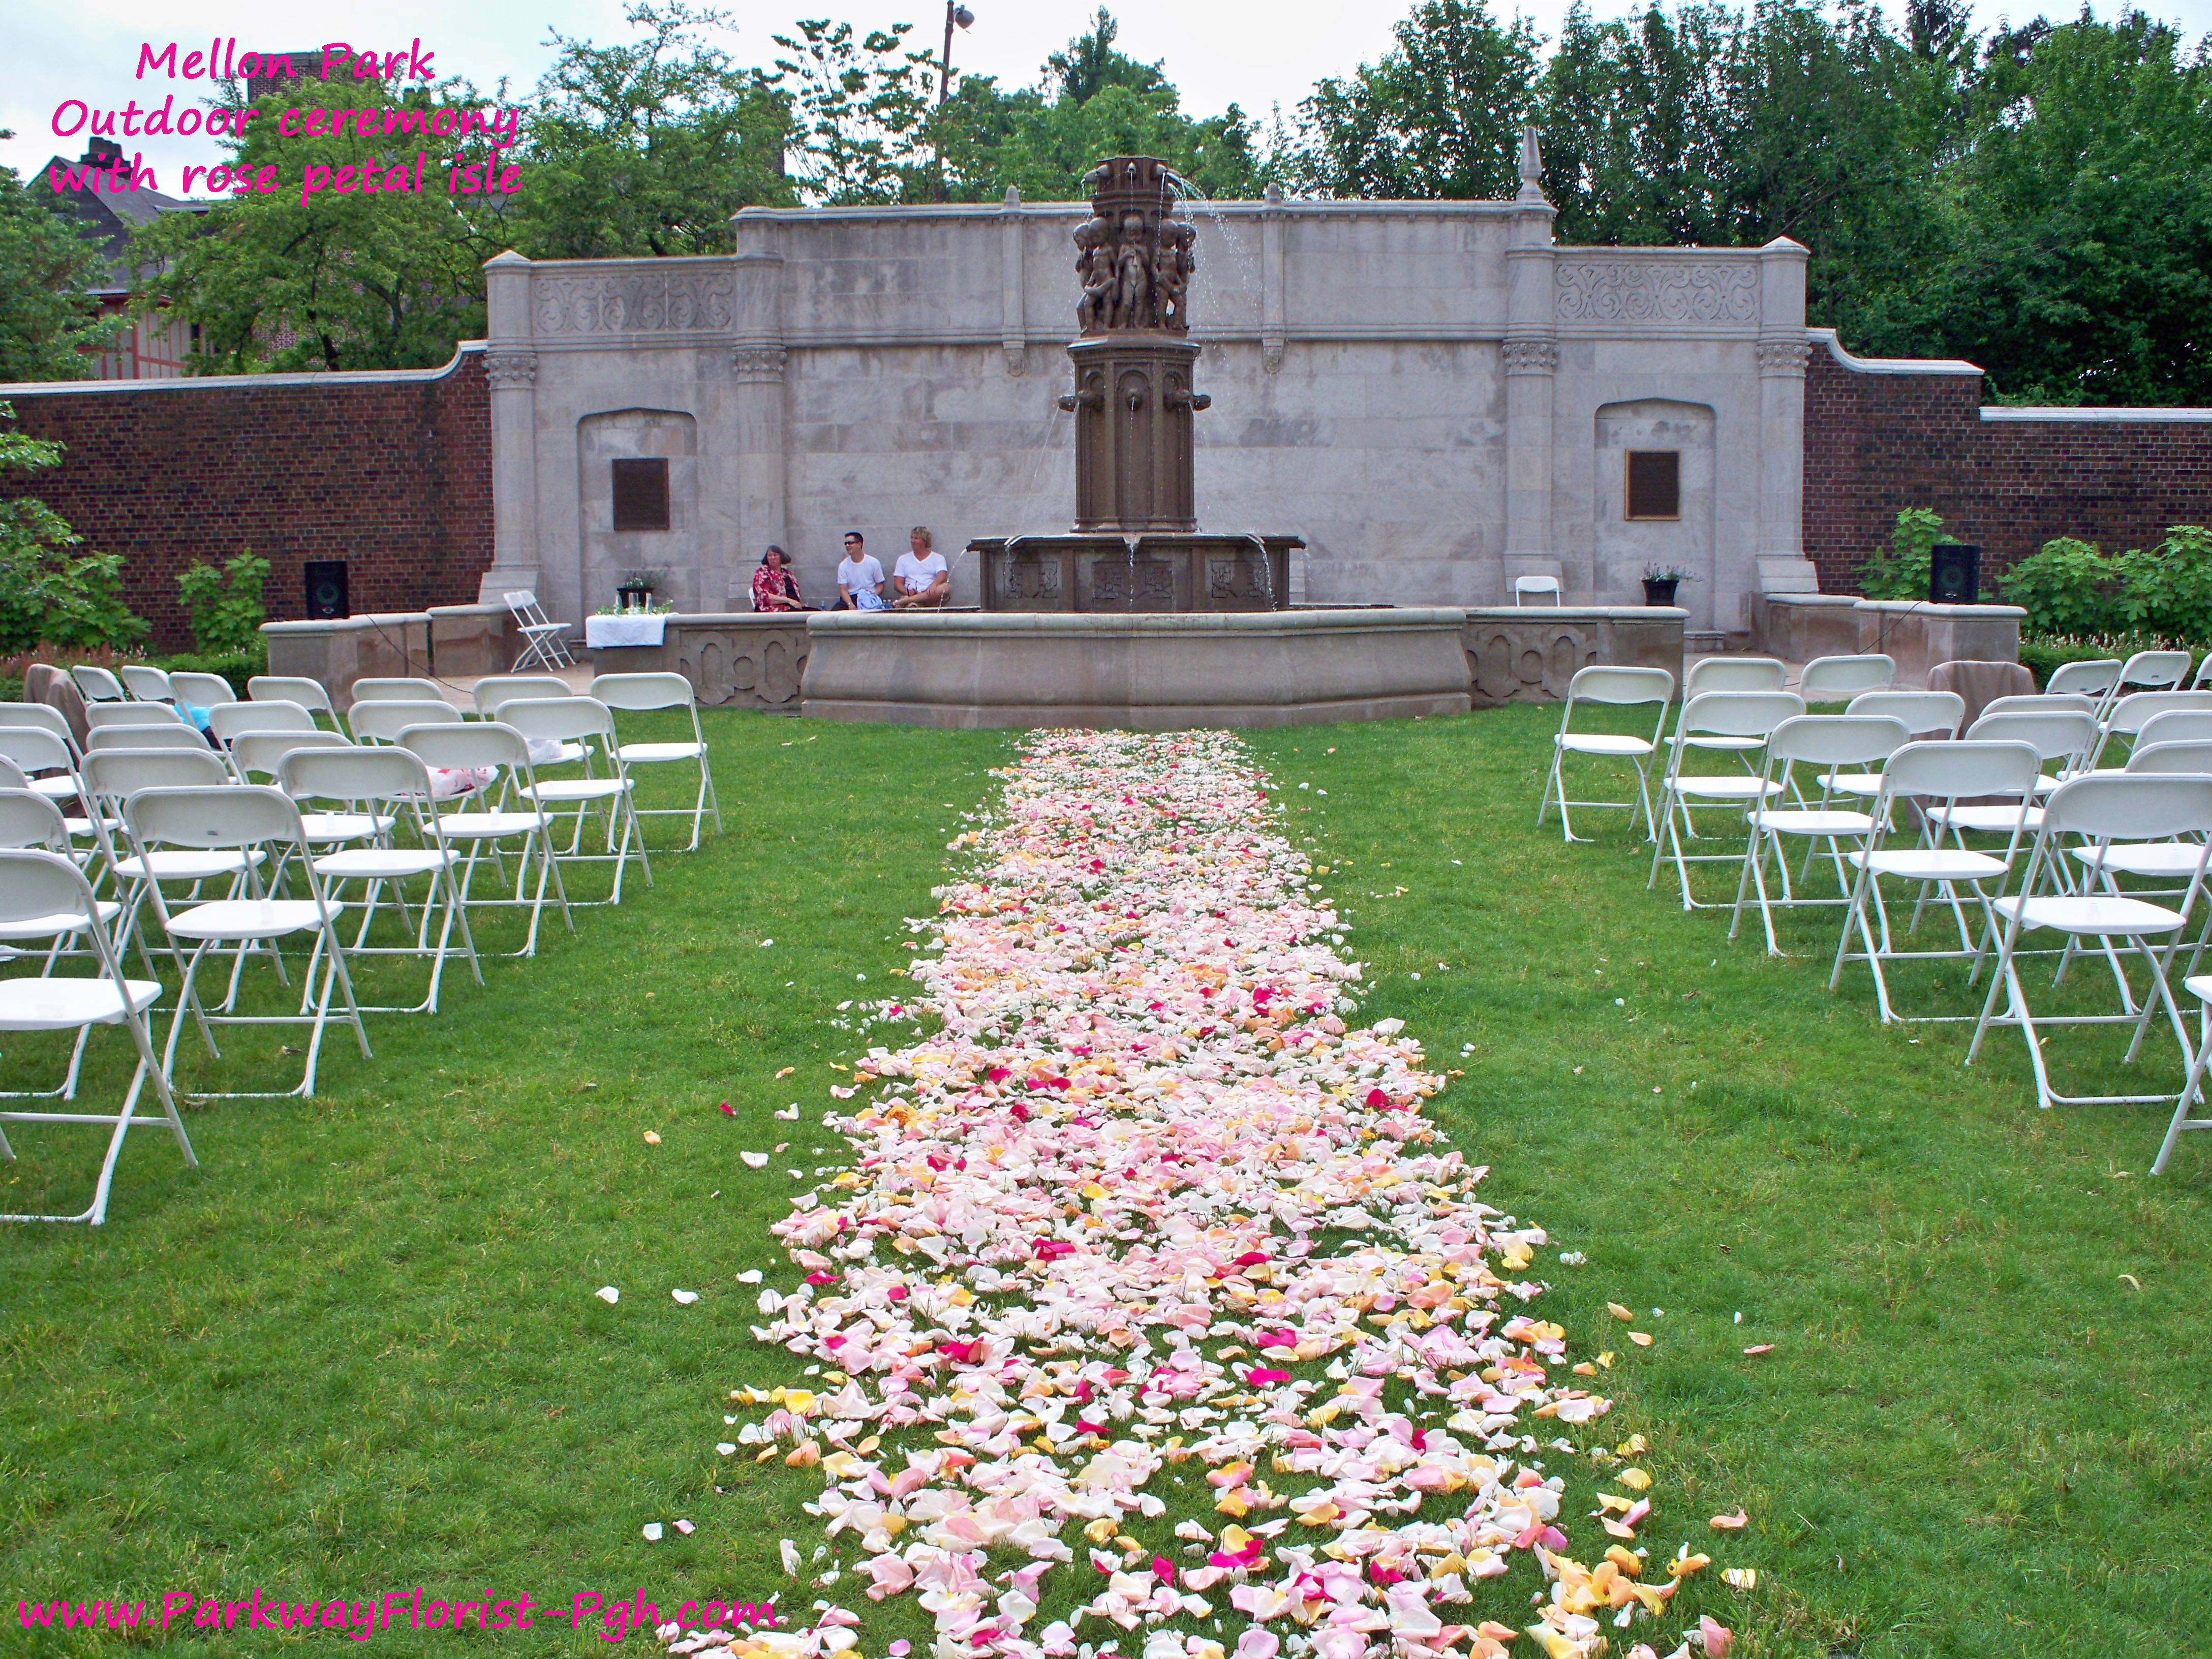 Mellon Park Outdoor Ceremony With Rose Petal Isle